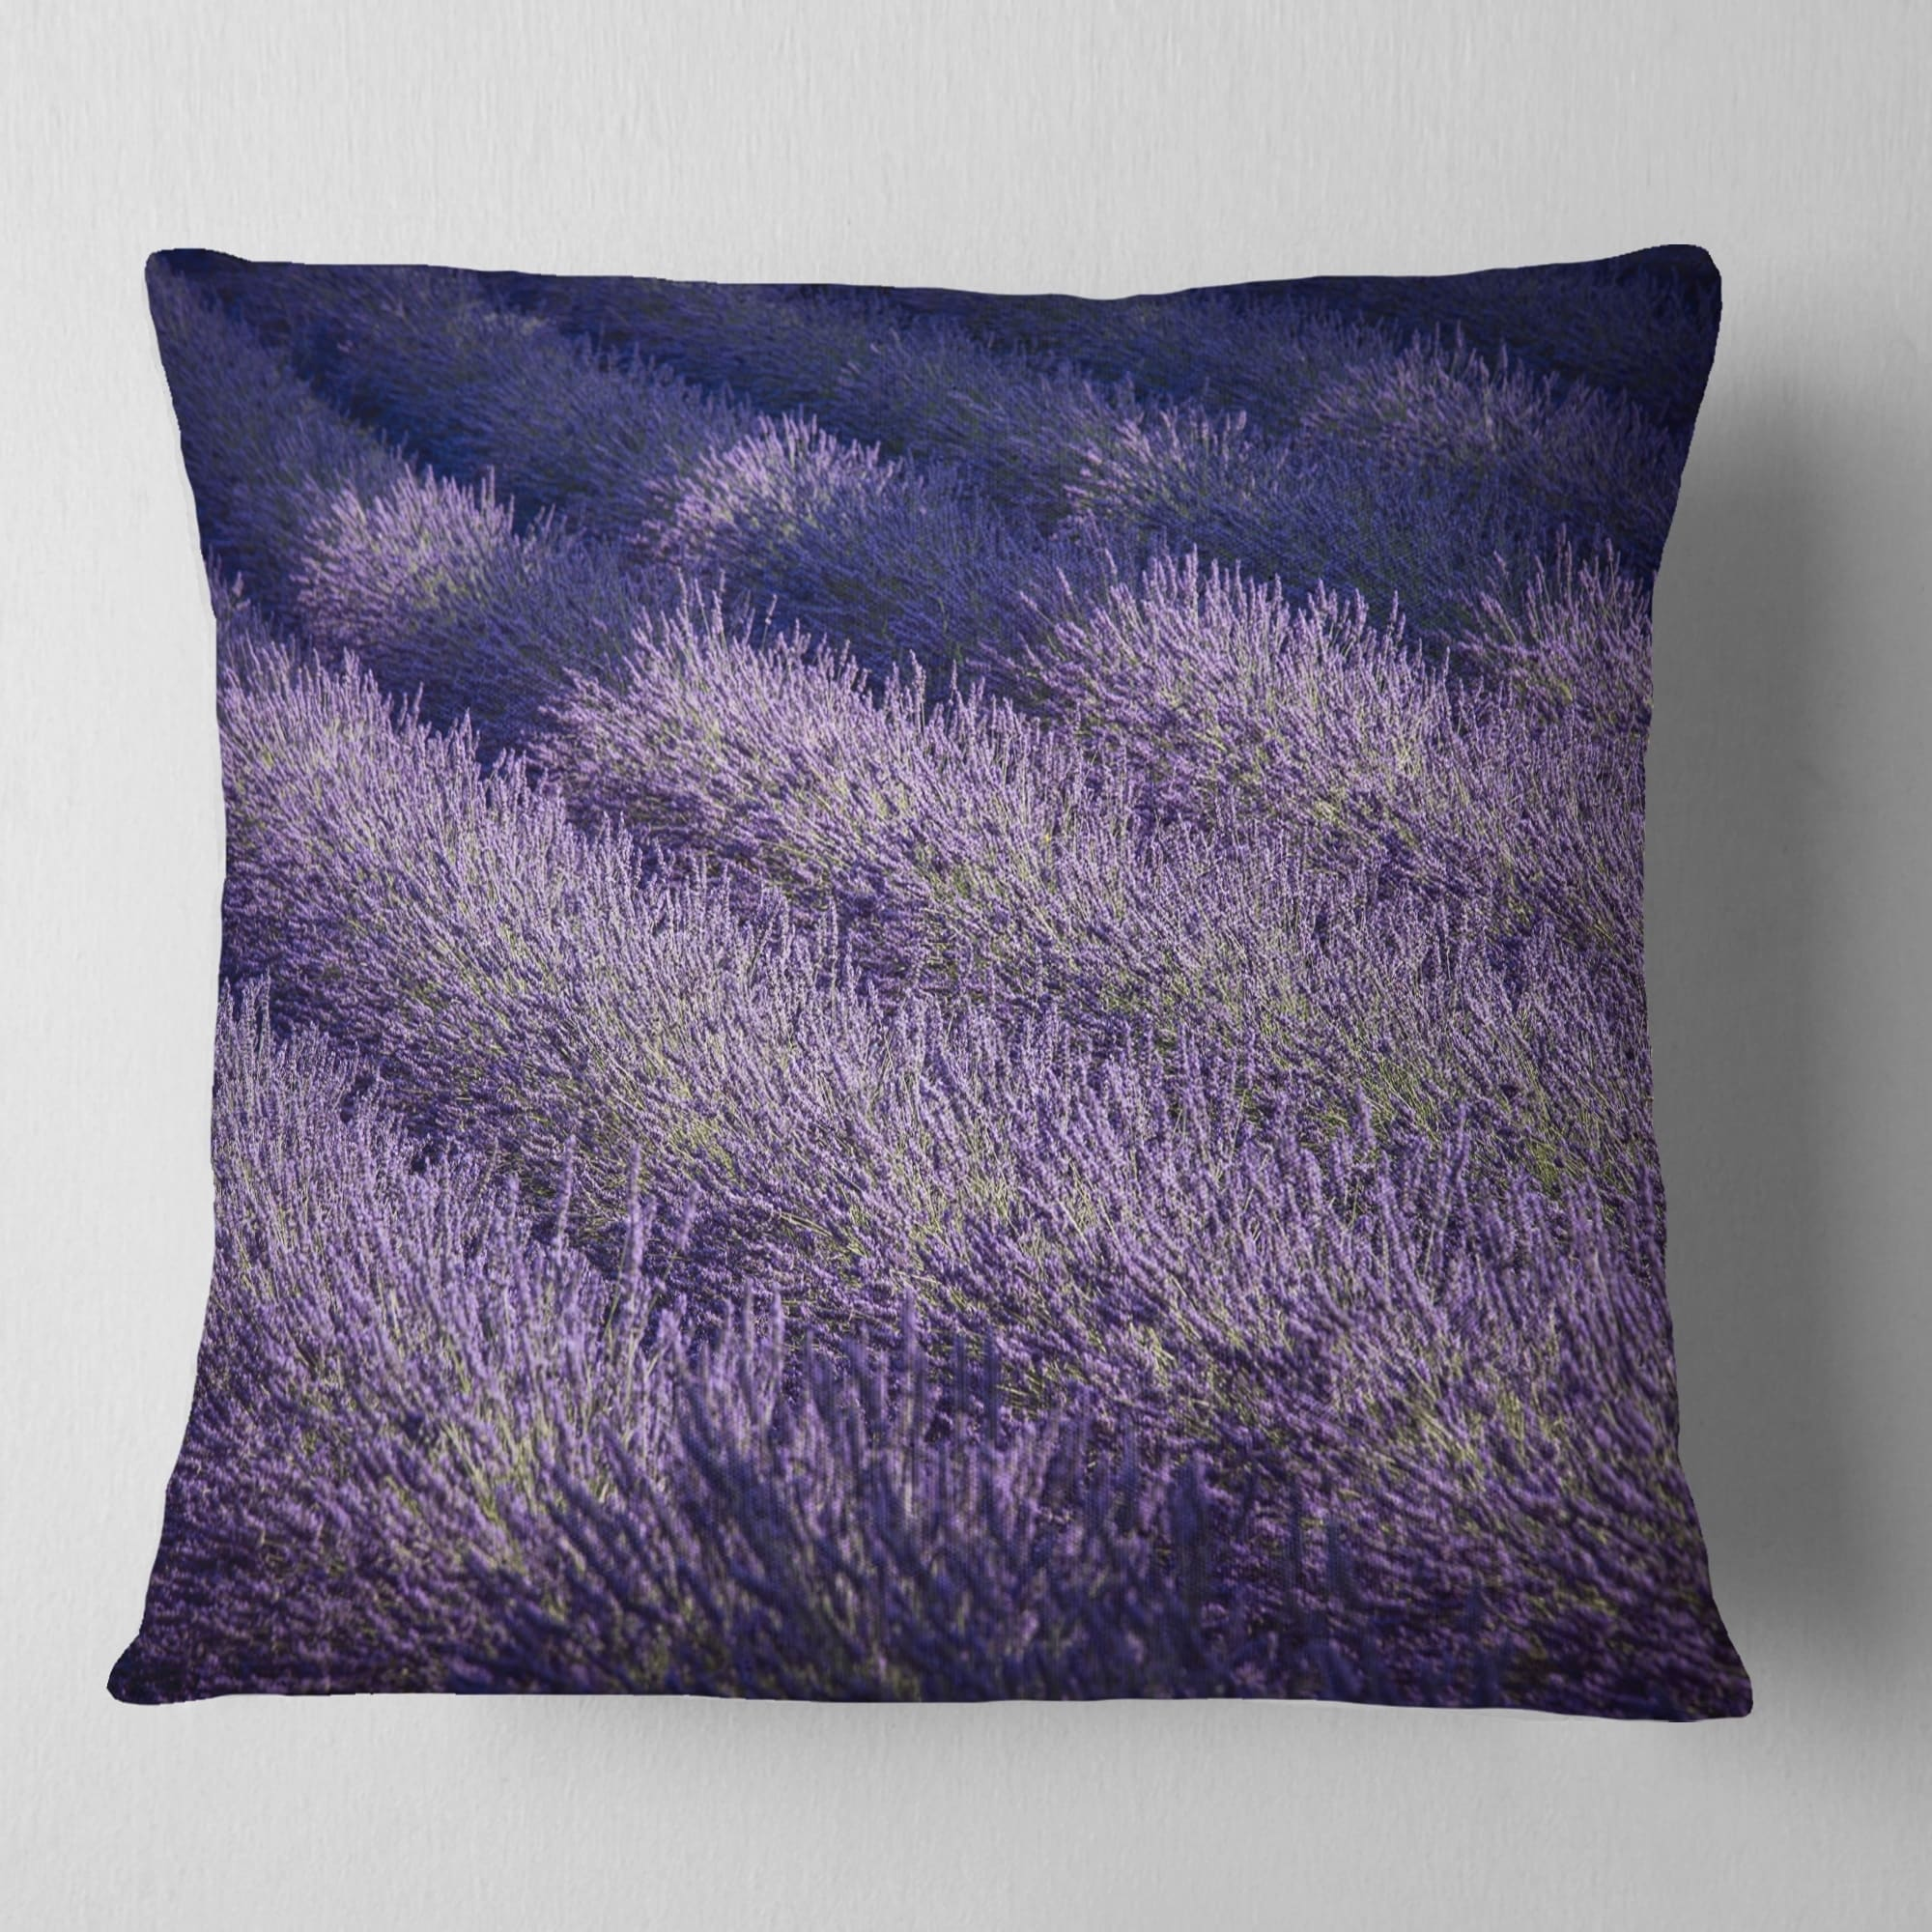 Pillows Online Buy Throw Pillows Online At Overstock Our Best